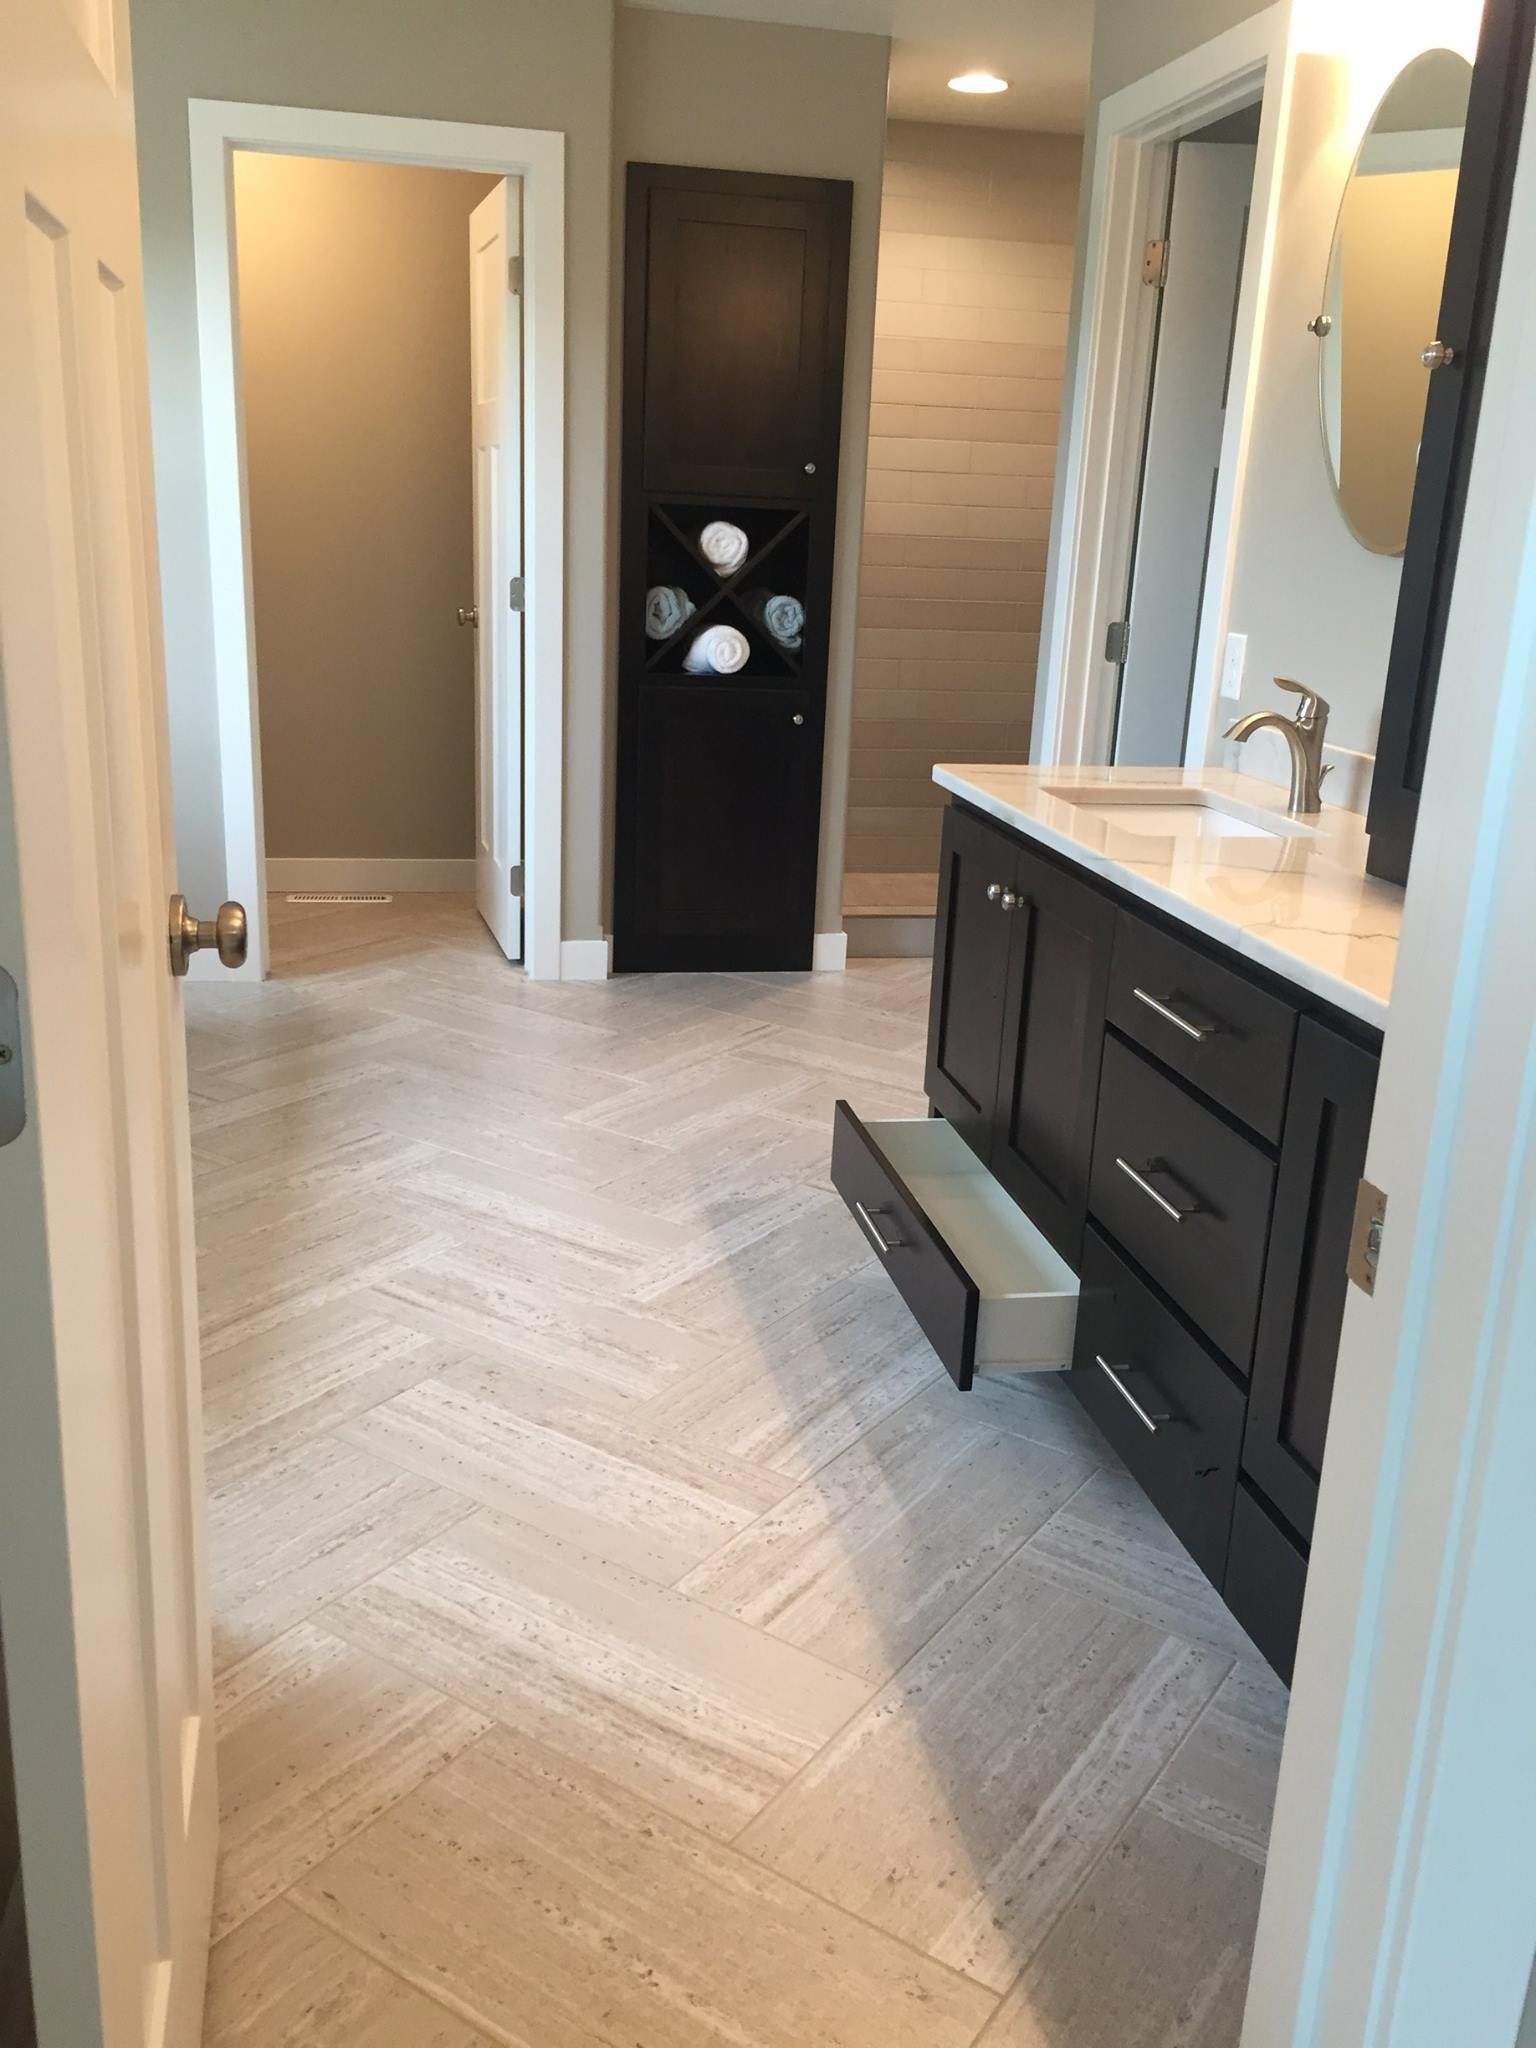 12 X 24 Vinyl Tile Laid In Herringbone Pattern Bathroom Floor Tiles Vinyl Flooring Tile Remodel